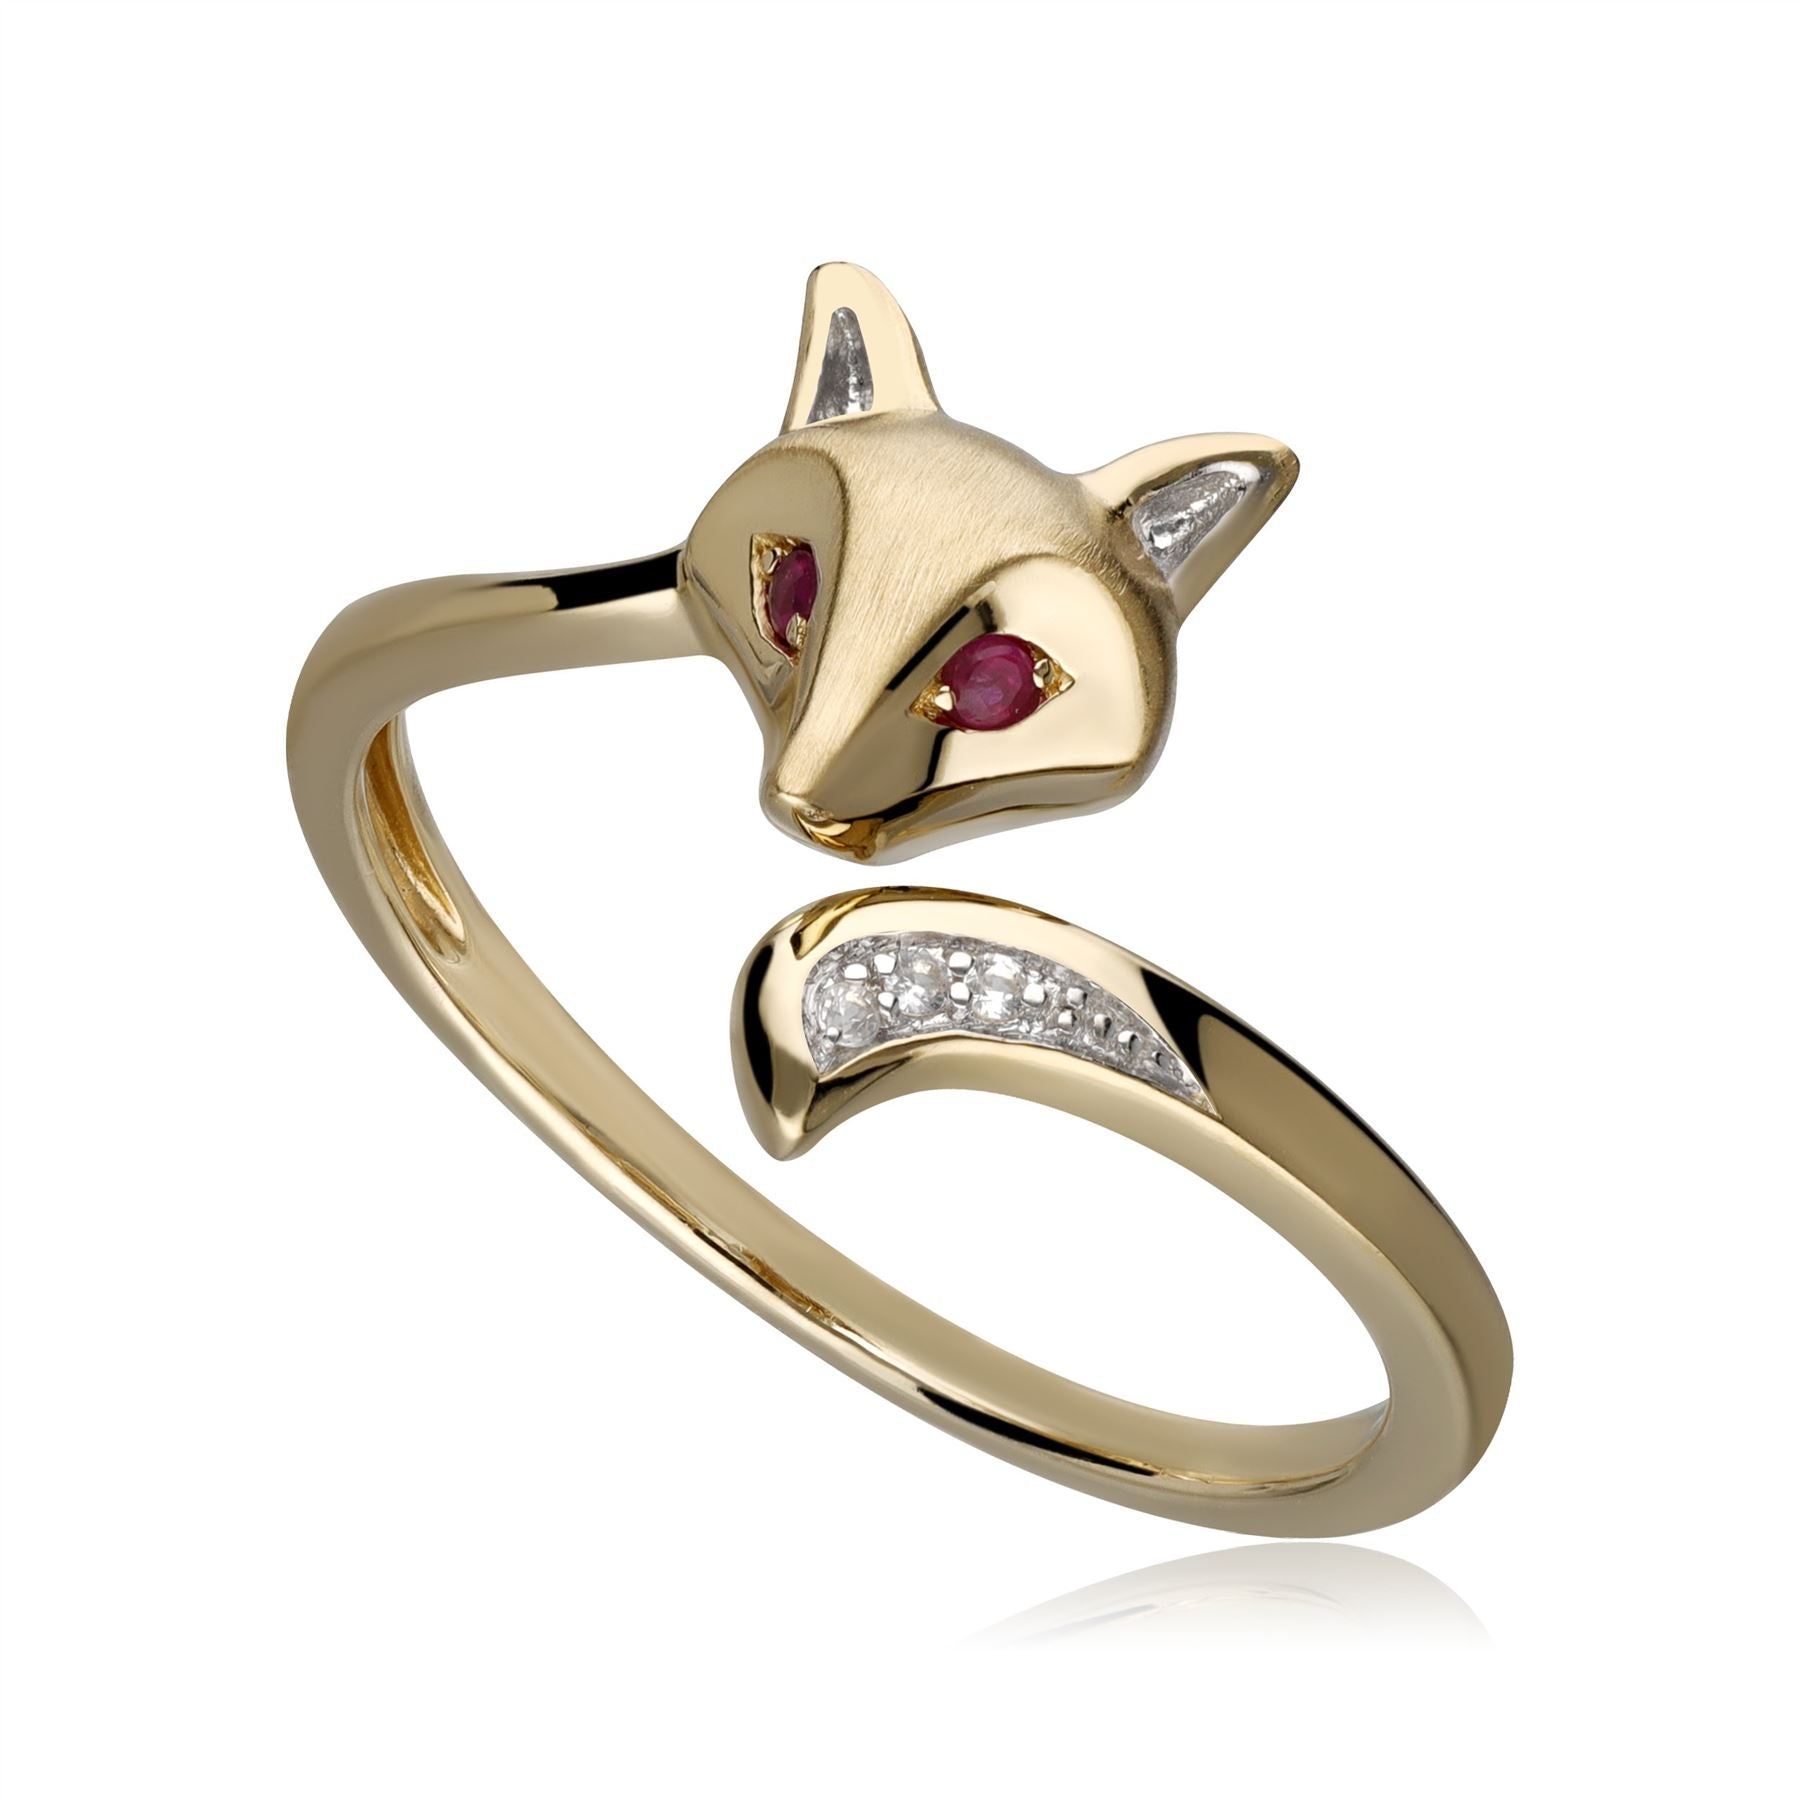 Gardenia Ruby & White Sapphire Fox Ring in 9ct Gold Deal Price £ 190.00